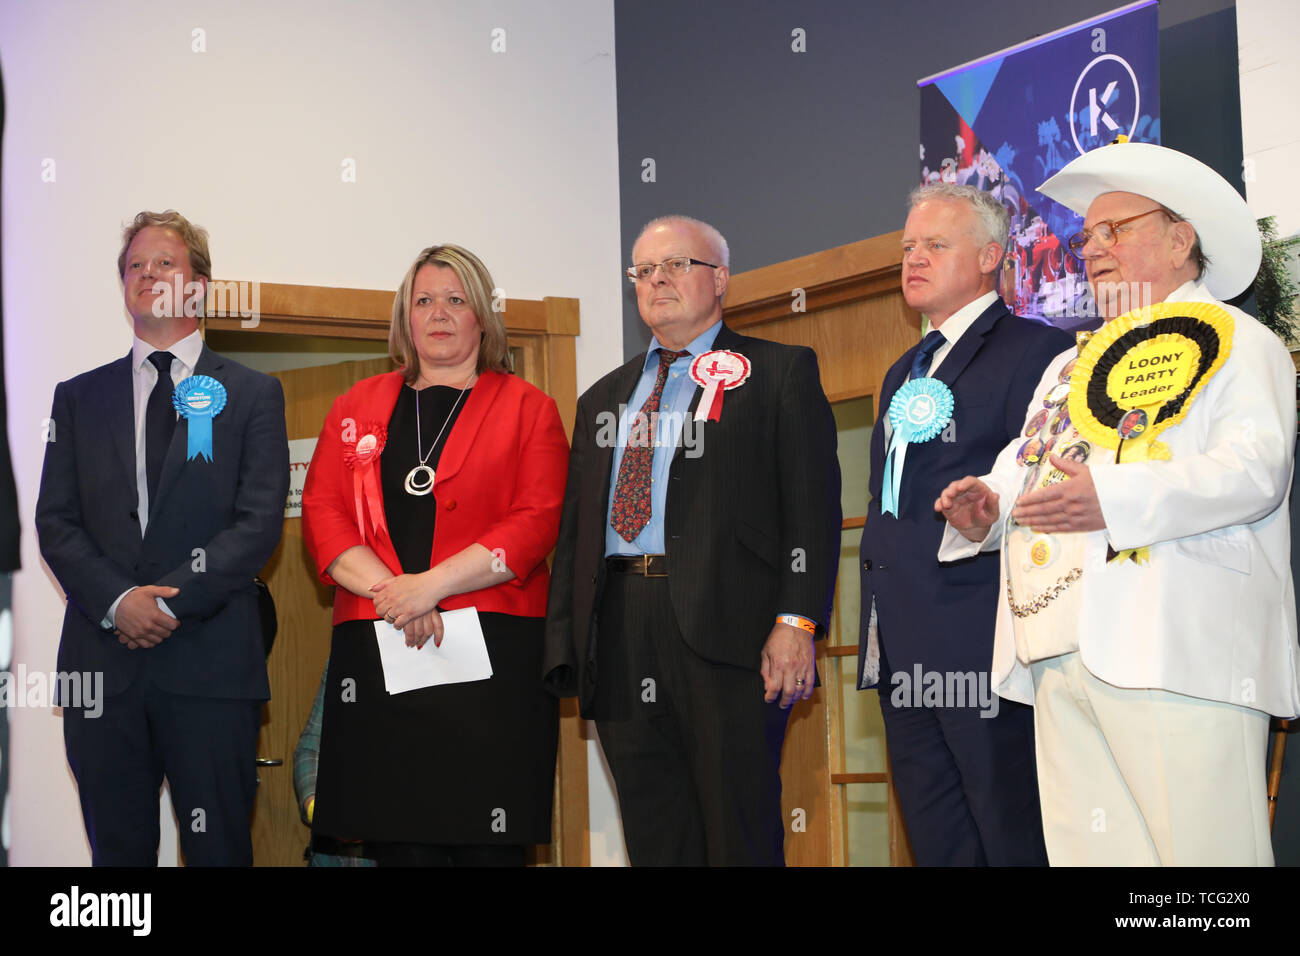 Peterborough, UK. 07th June, 2019. Candidates wait for the results before Lisa Forbes (Labour Party Candidate) has became the  new Member of Parliament for Peterborough, beating Mike Greene (Brexit Party candidate, 2nd right) into second place and Paul Bristow (Conservative Party candidate, left) was third. The by-election was held in Peterborough today after disgraced MP Fiona Onasanya was removed from her post as Peterborough MP when over 19,000 signed a recall petition, following her court appearance over a speeding ticket, and her spell in jail. Peterborough by-election, Peterborough, Camb - Stock Image